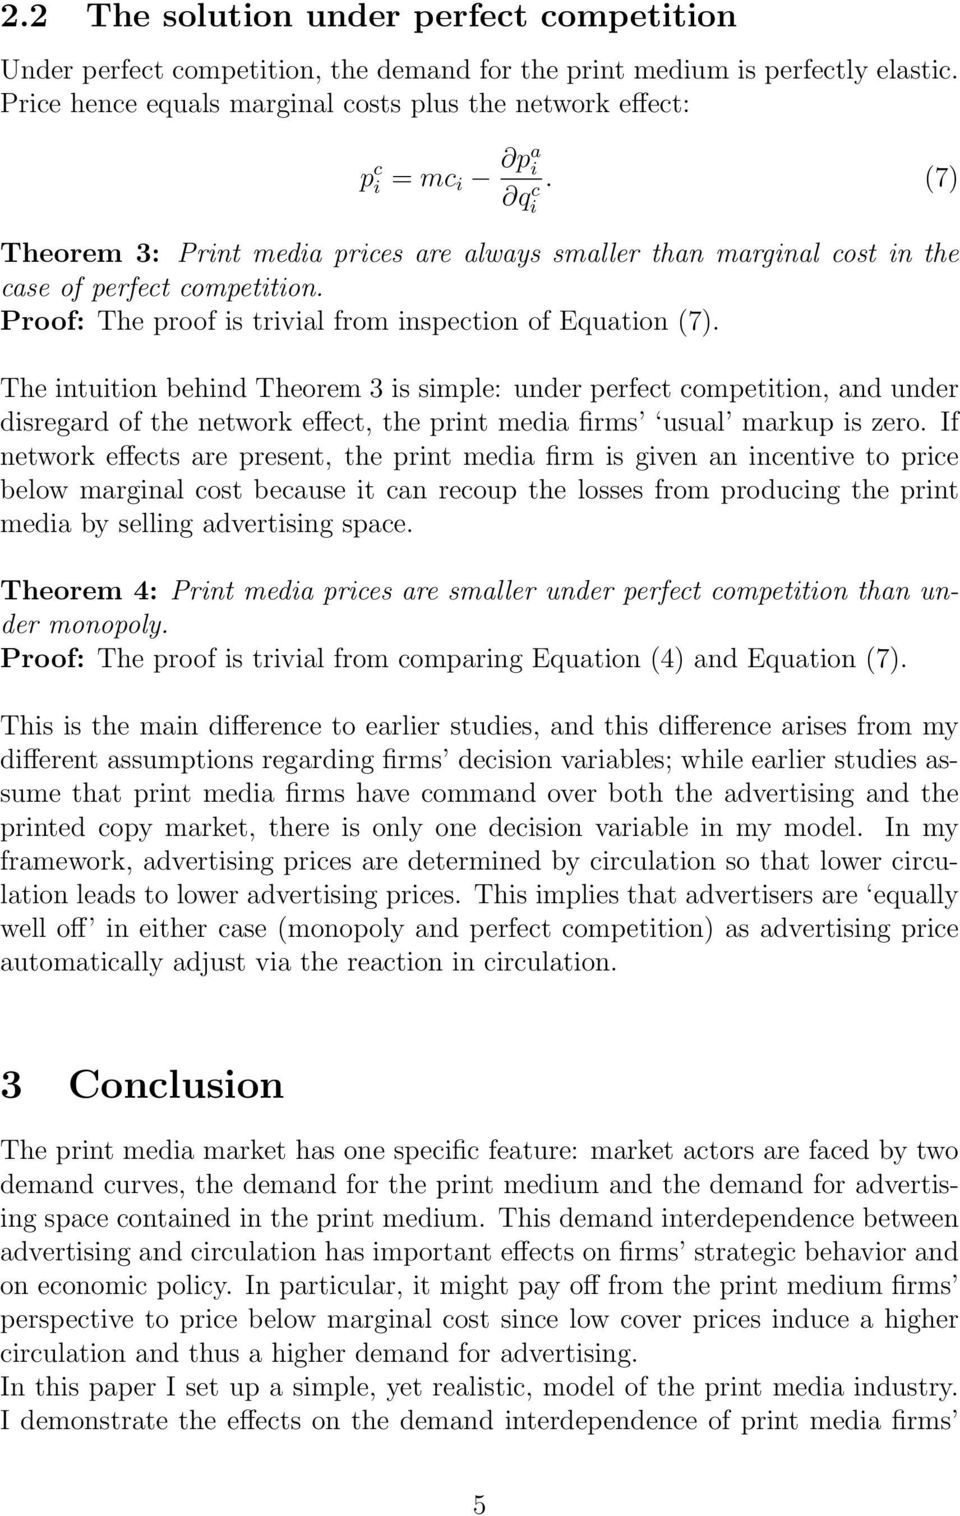 Proof: The proof is trivial from inspection of Equation (7).